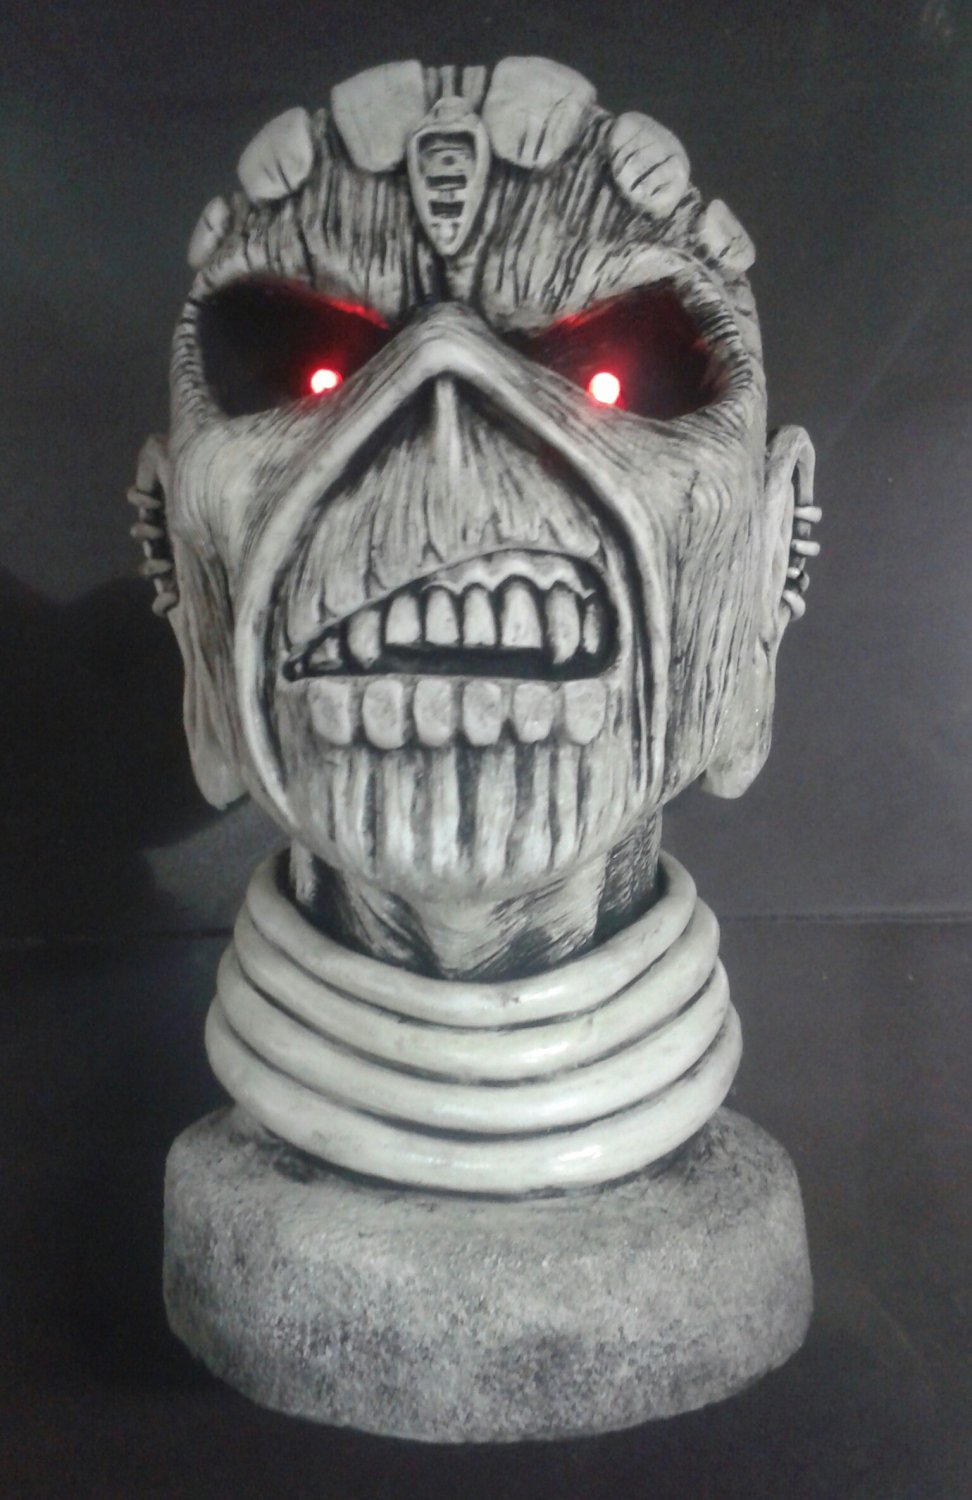 IRON MAIDEN The Book of Souls STATUE BUST SCULPTURE CD